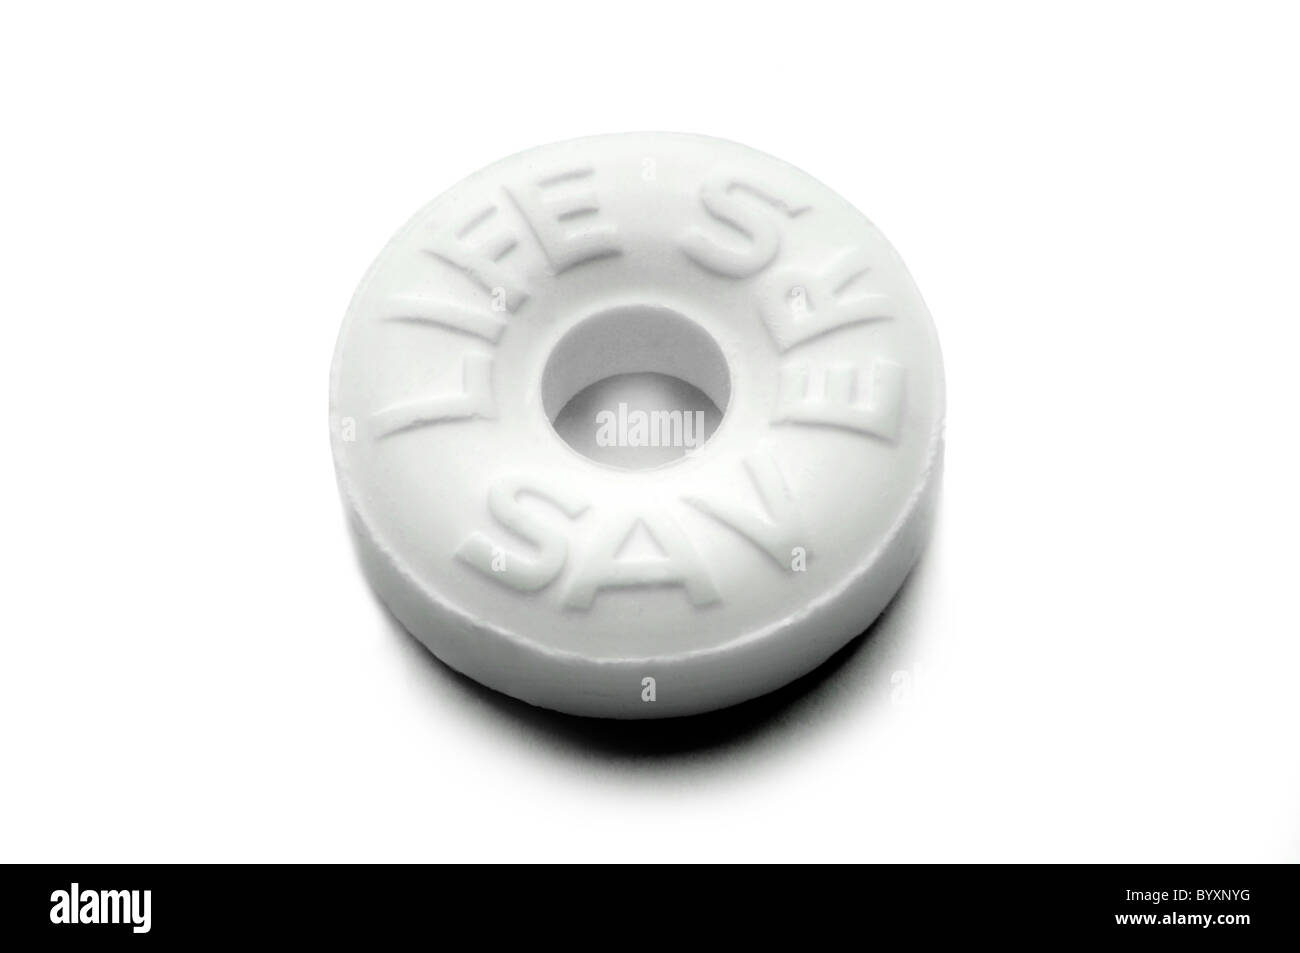 life saver candy on white - Stock Image